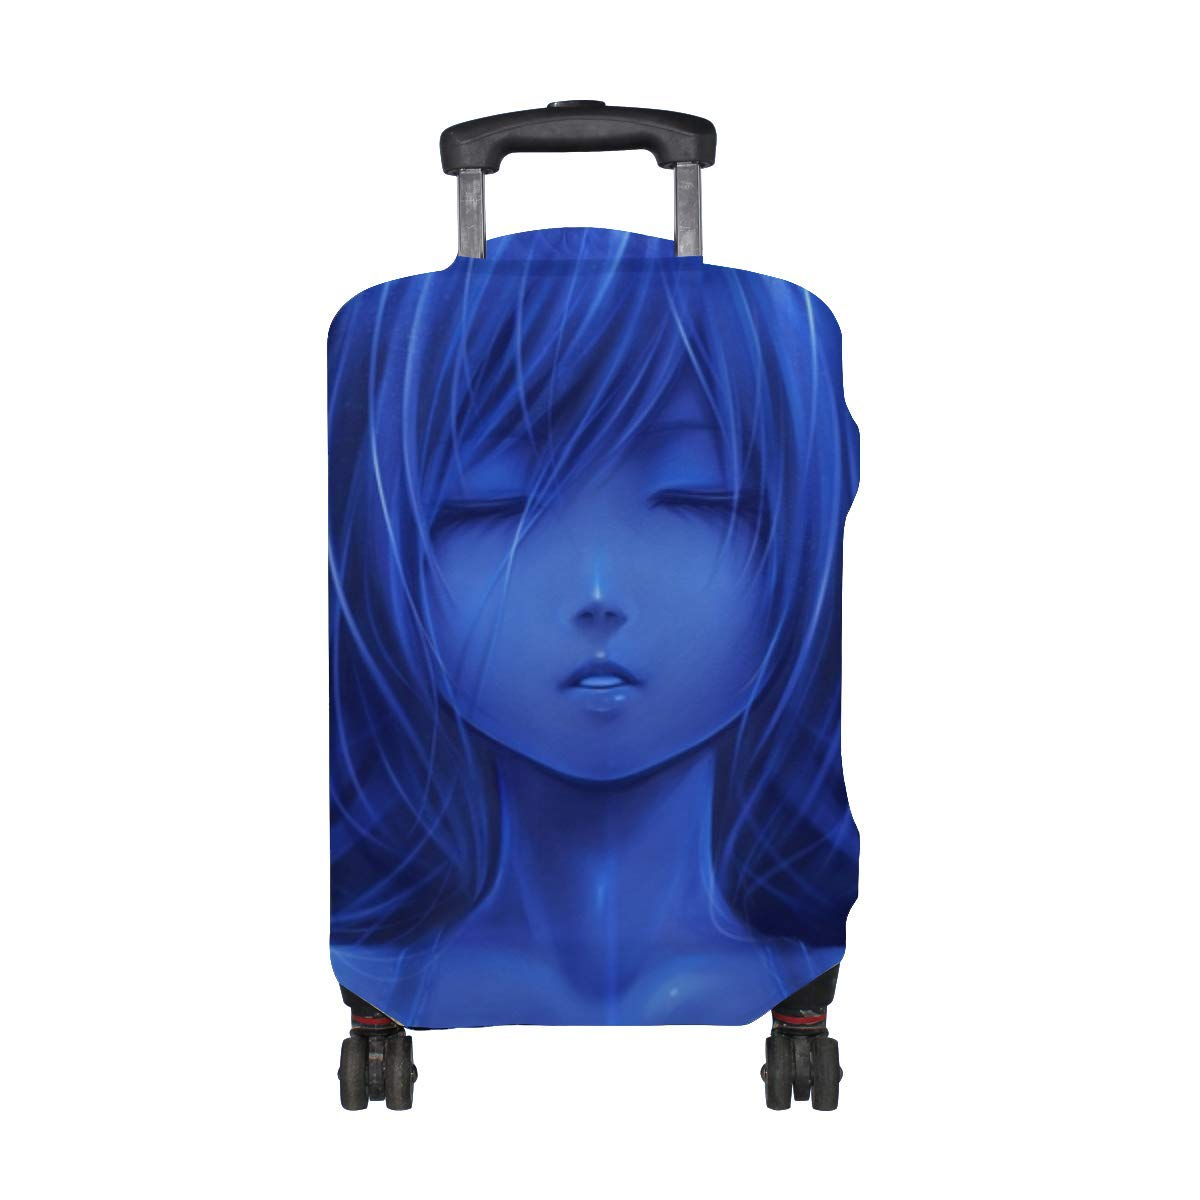 Maxm Bouno Satoshi Girl Blue Face Horns Ears Pattern Print Travel Luggage Protector Baggage Suitcase Cover Fits 18-21 Inch Luggage